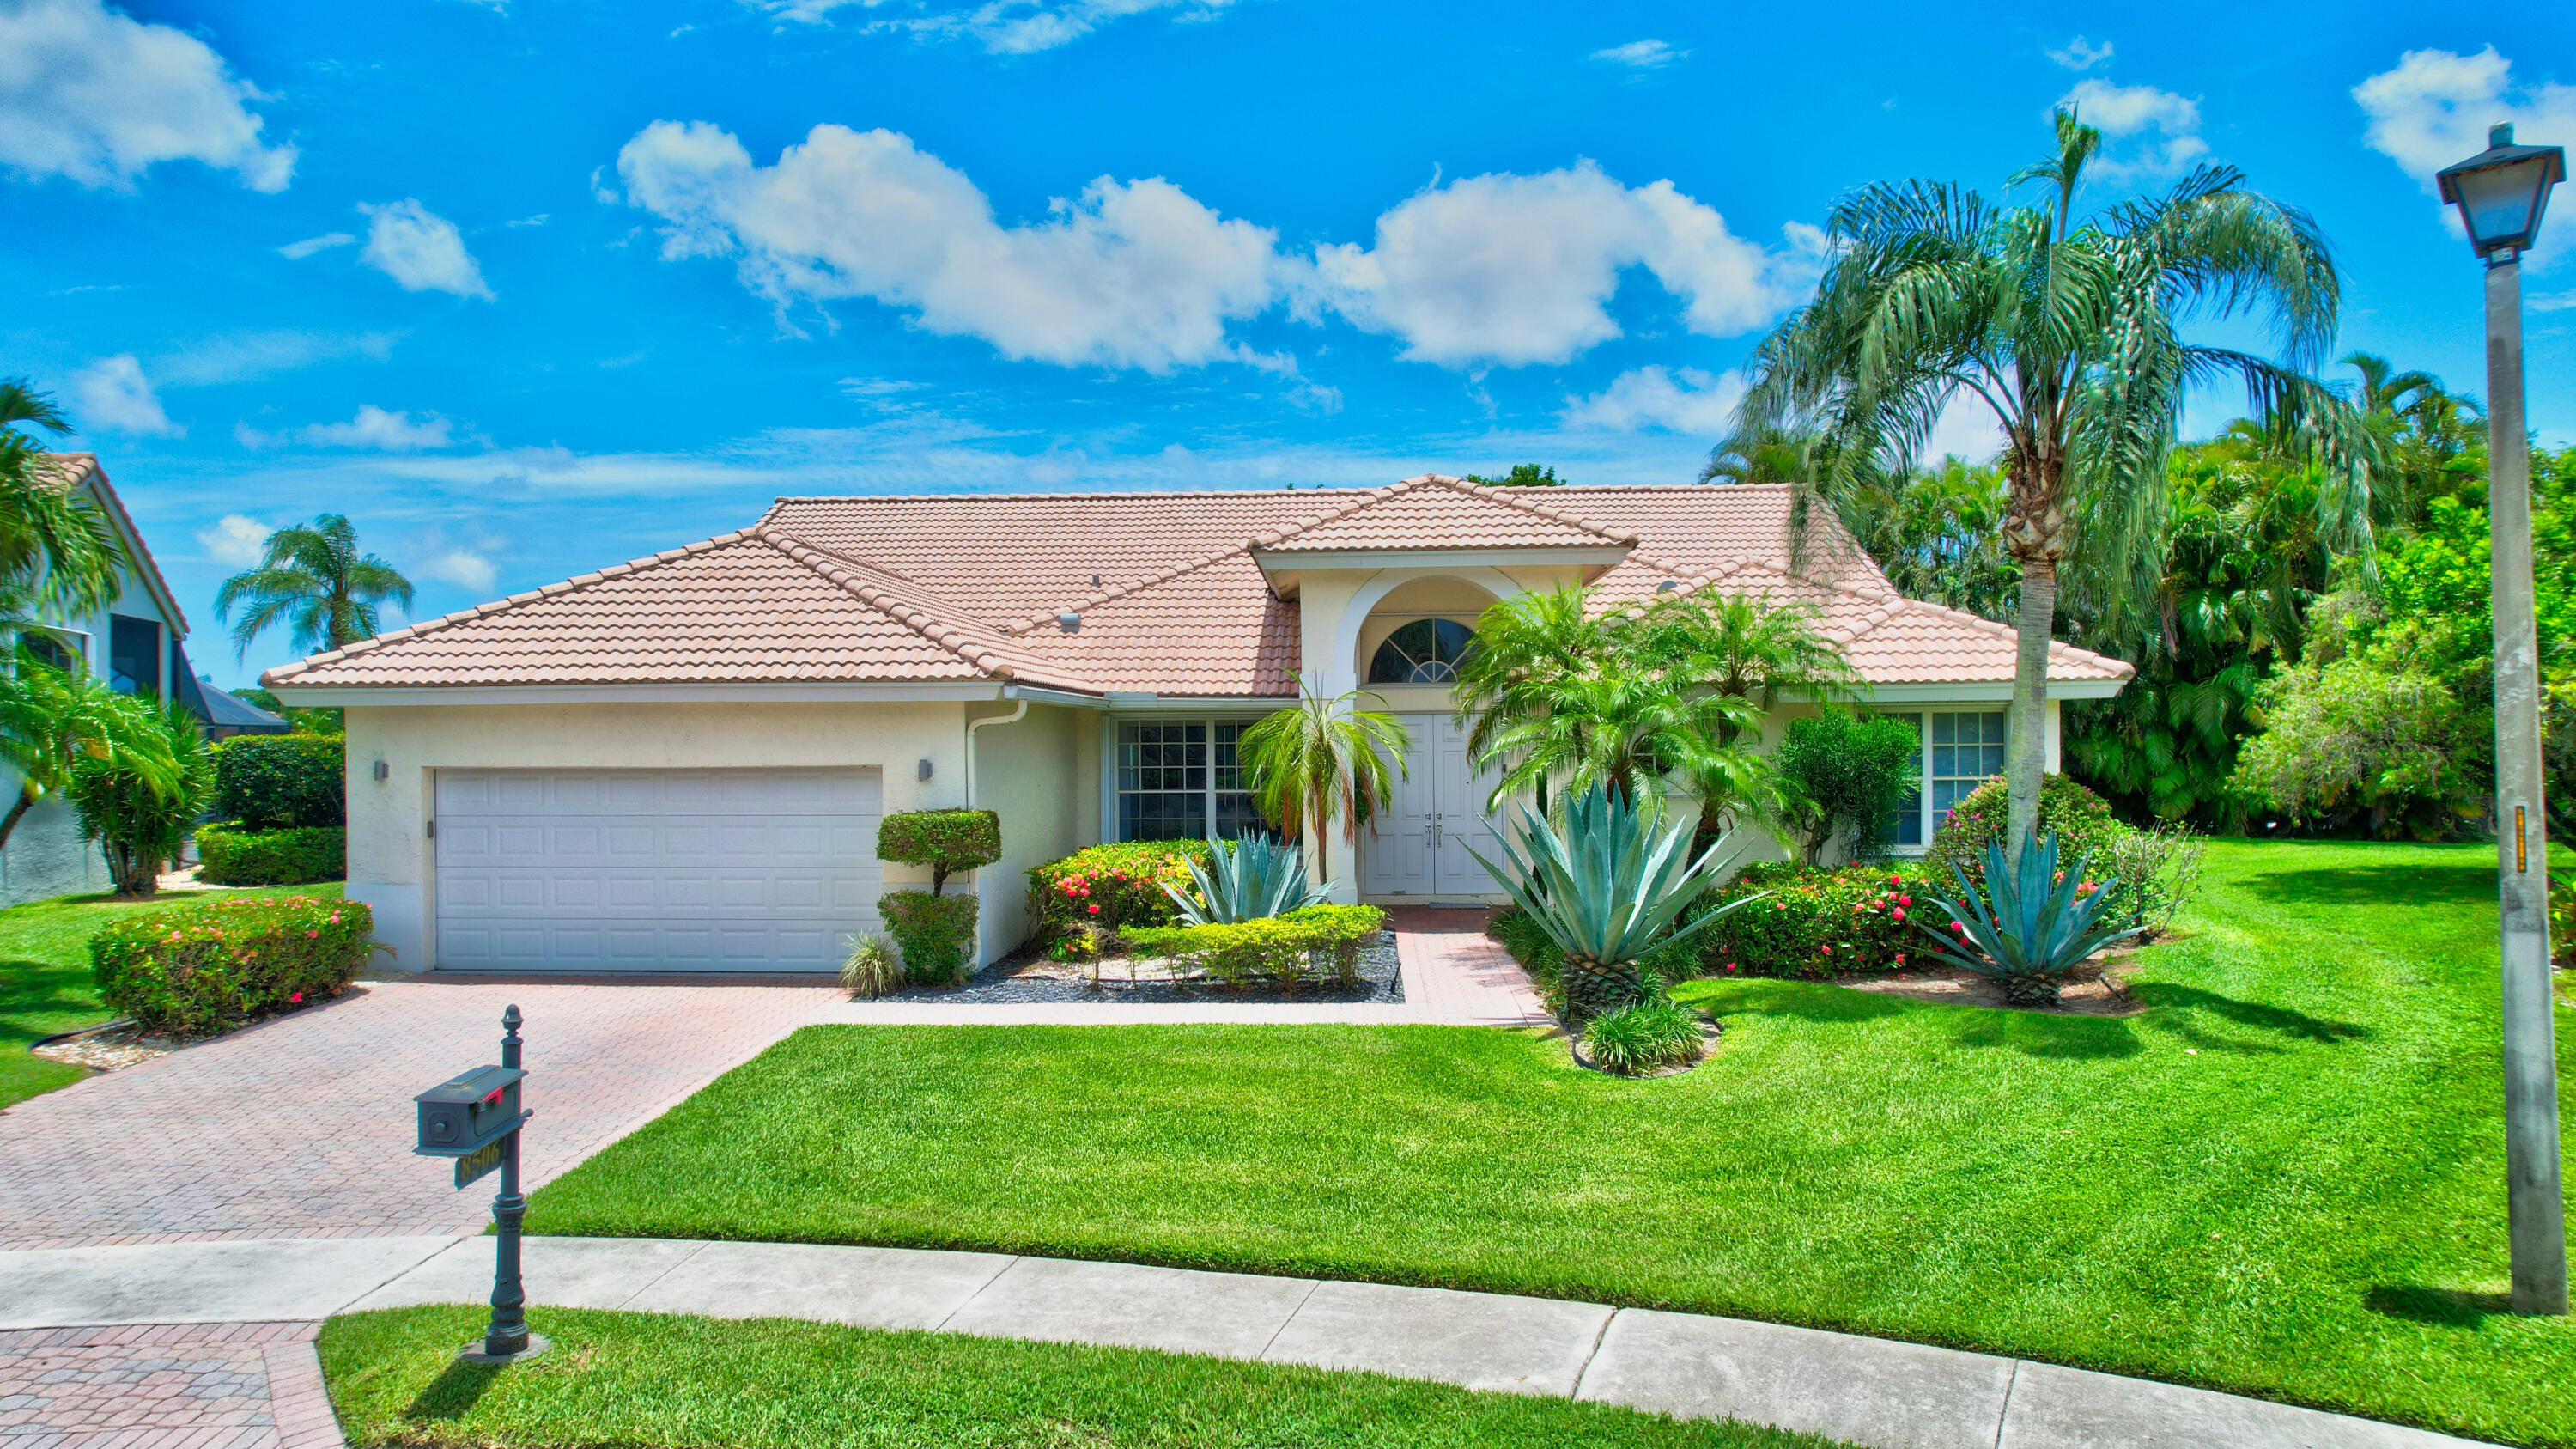 For Sale 10729090, FL